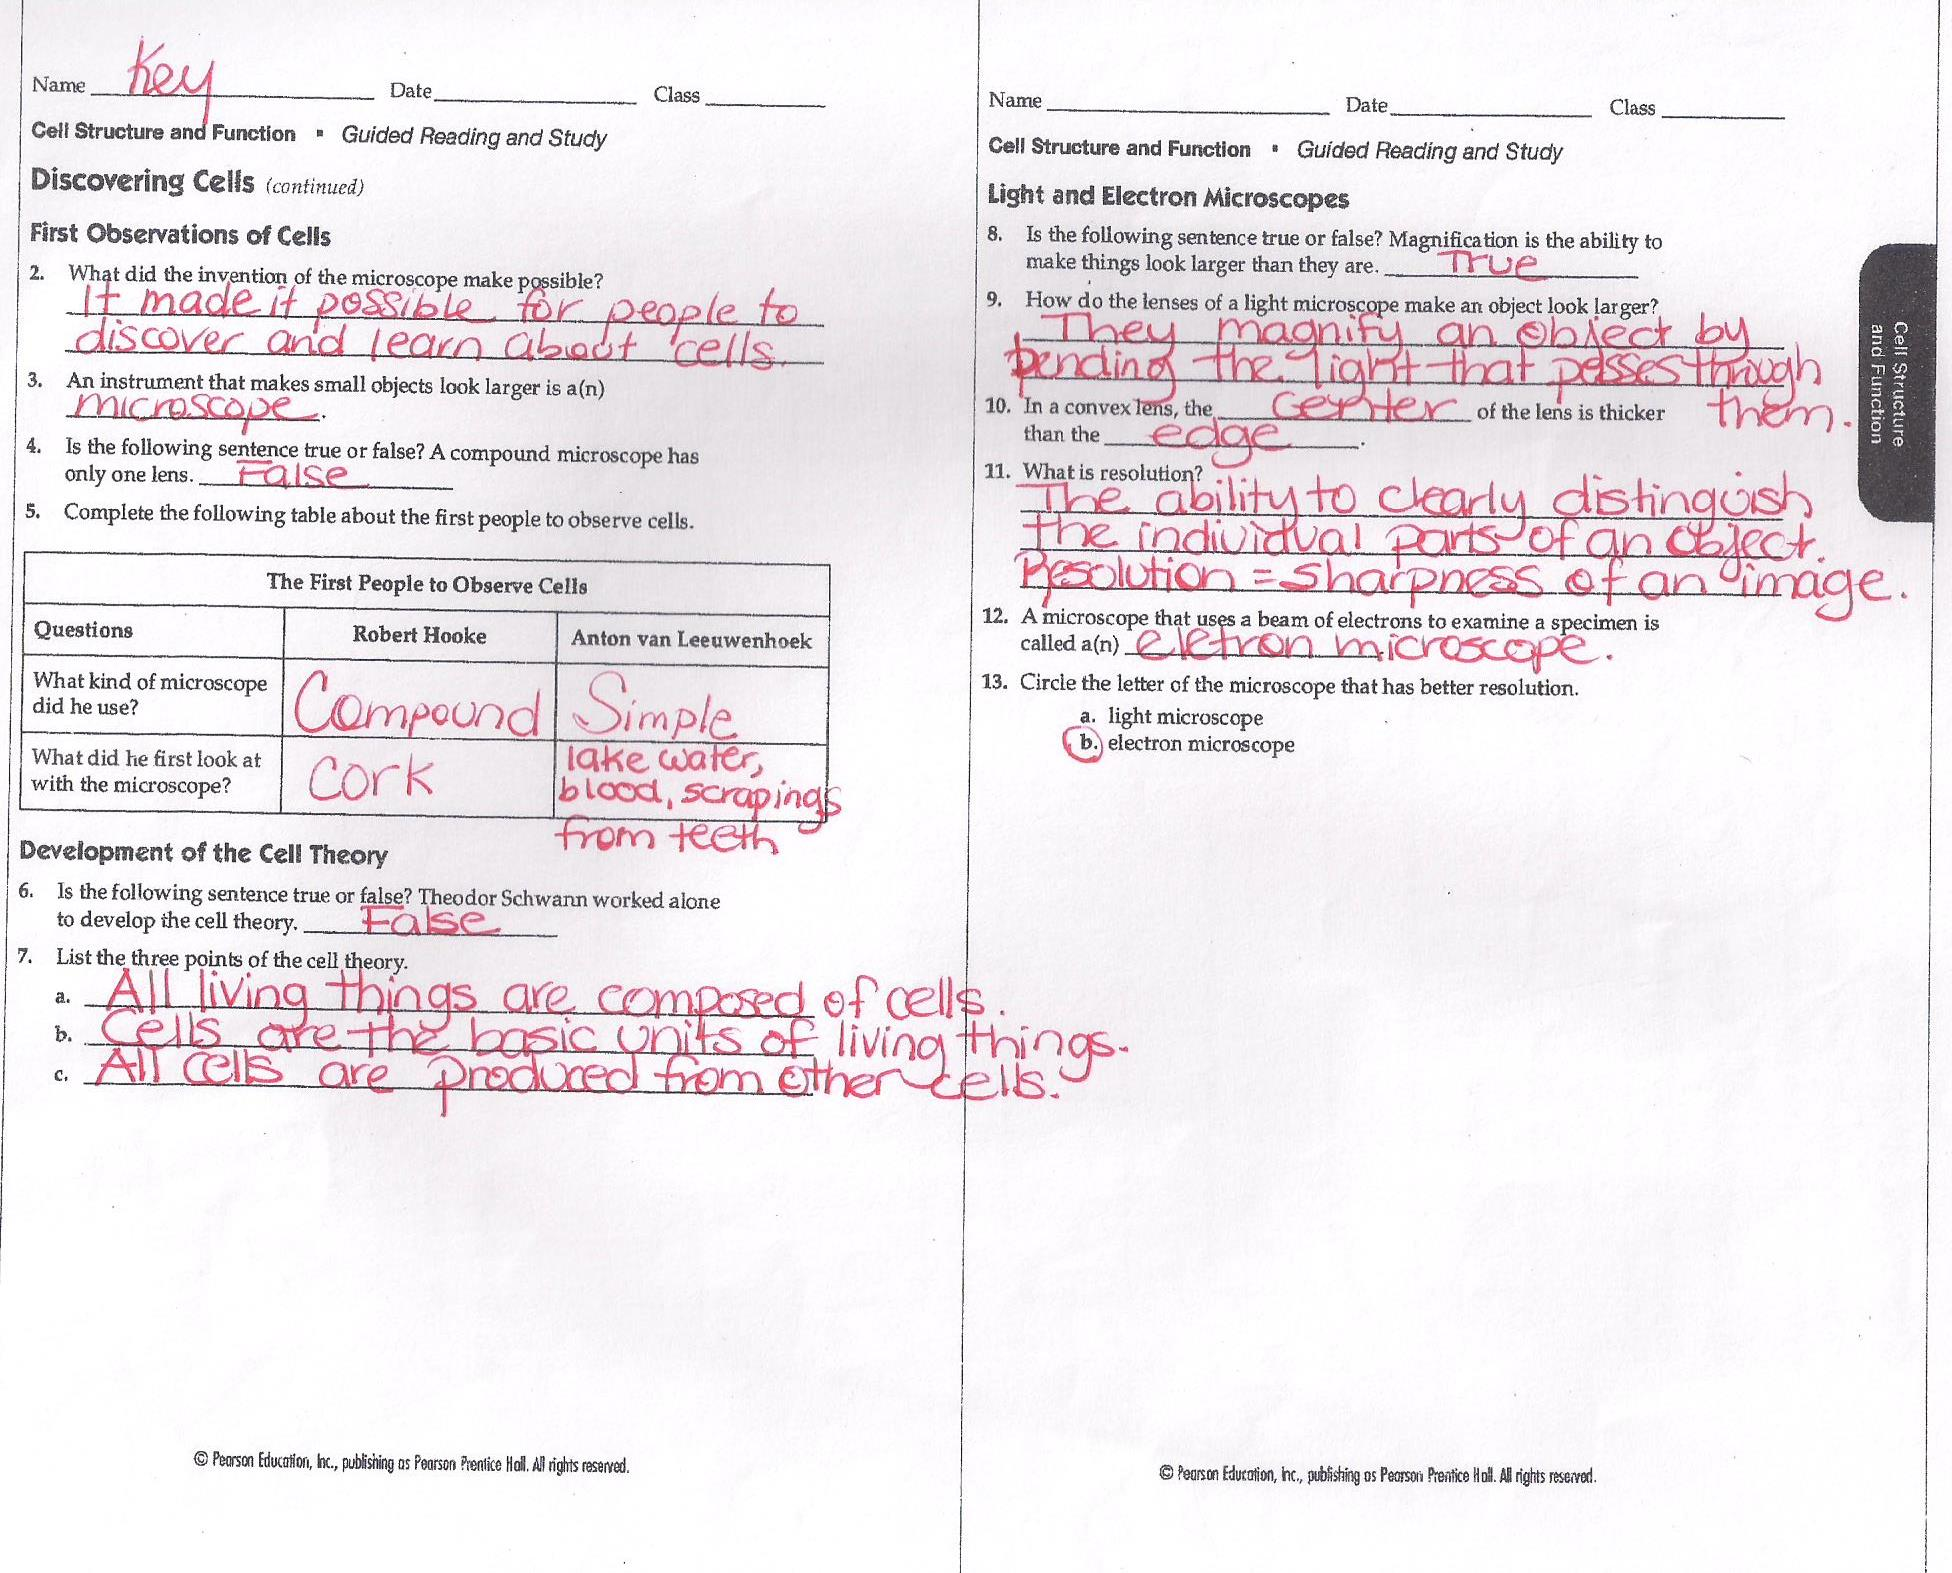 Cell structure and function worksheet answers key